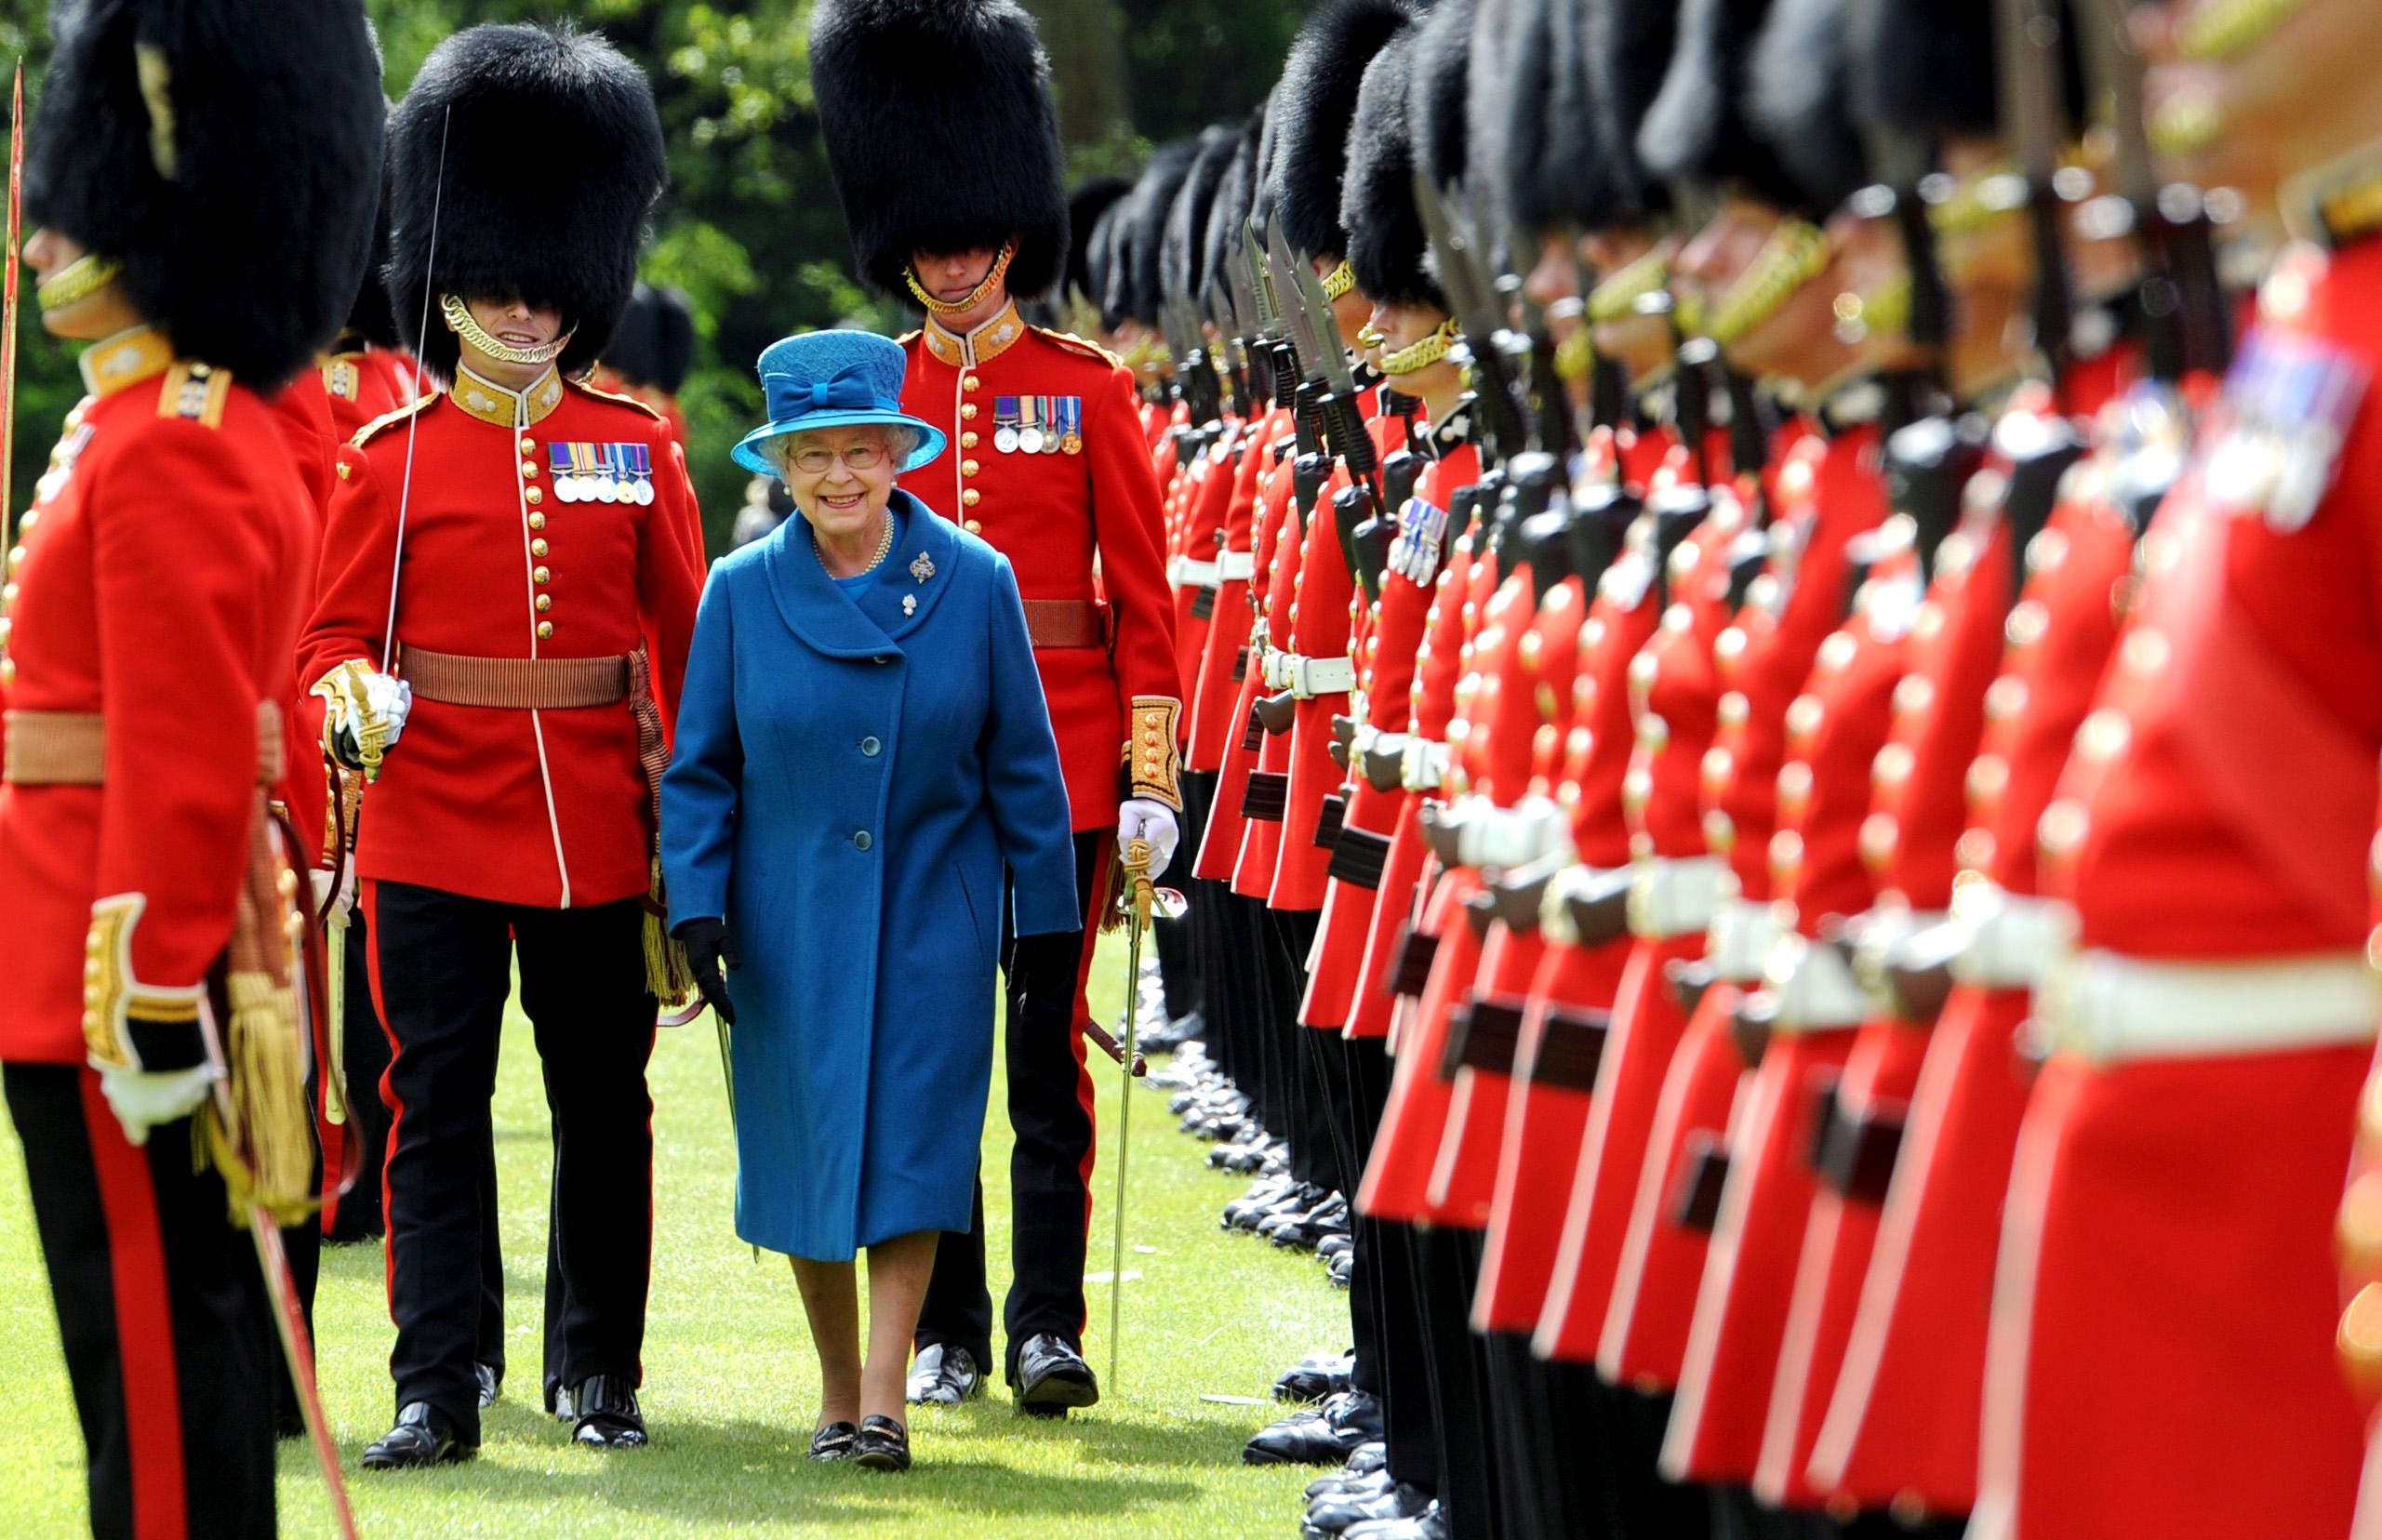 LONDON - MAY 11: Queen Elizabeth II inspects the Grenadier Guards before presenting their new colours in the garden of Buckingham Palace on May 11, 2010 in London, England. The Queen paid tribute to the families of Grenadier Guardsmen killed while fighting in Afghanistan and comrades wounded in action as she presented the regiment with new colours today. (Photo by Anthony Devlin/WPA Pool/Getty Images)